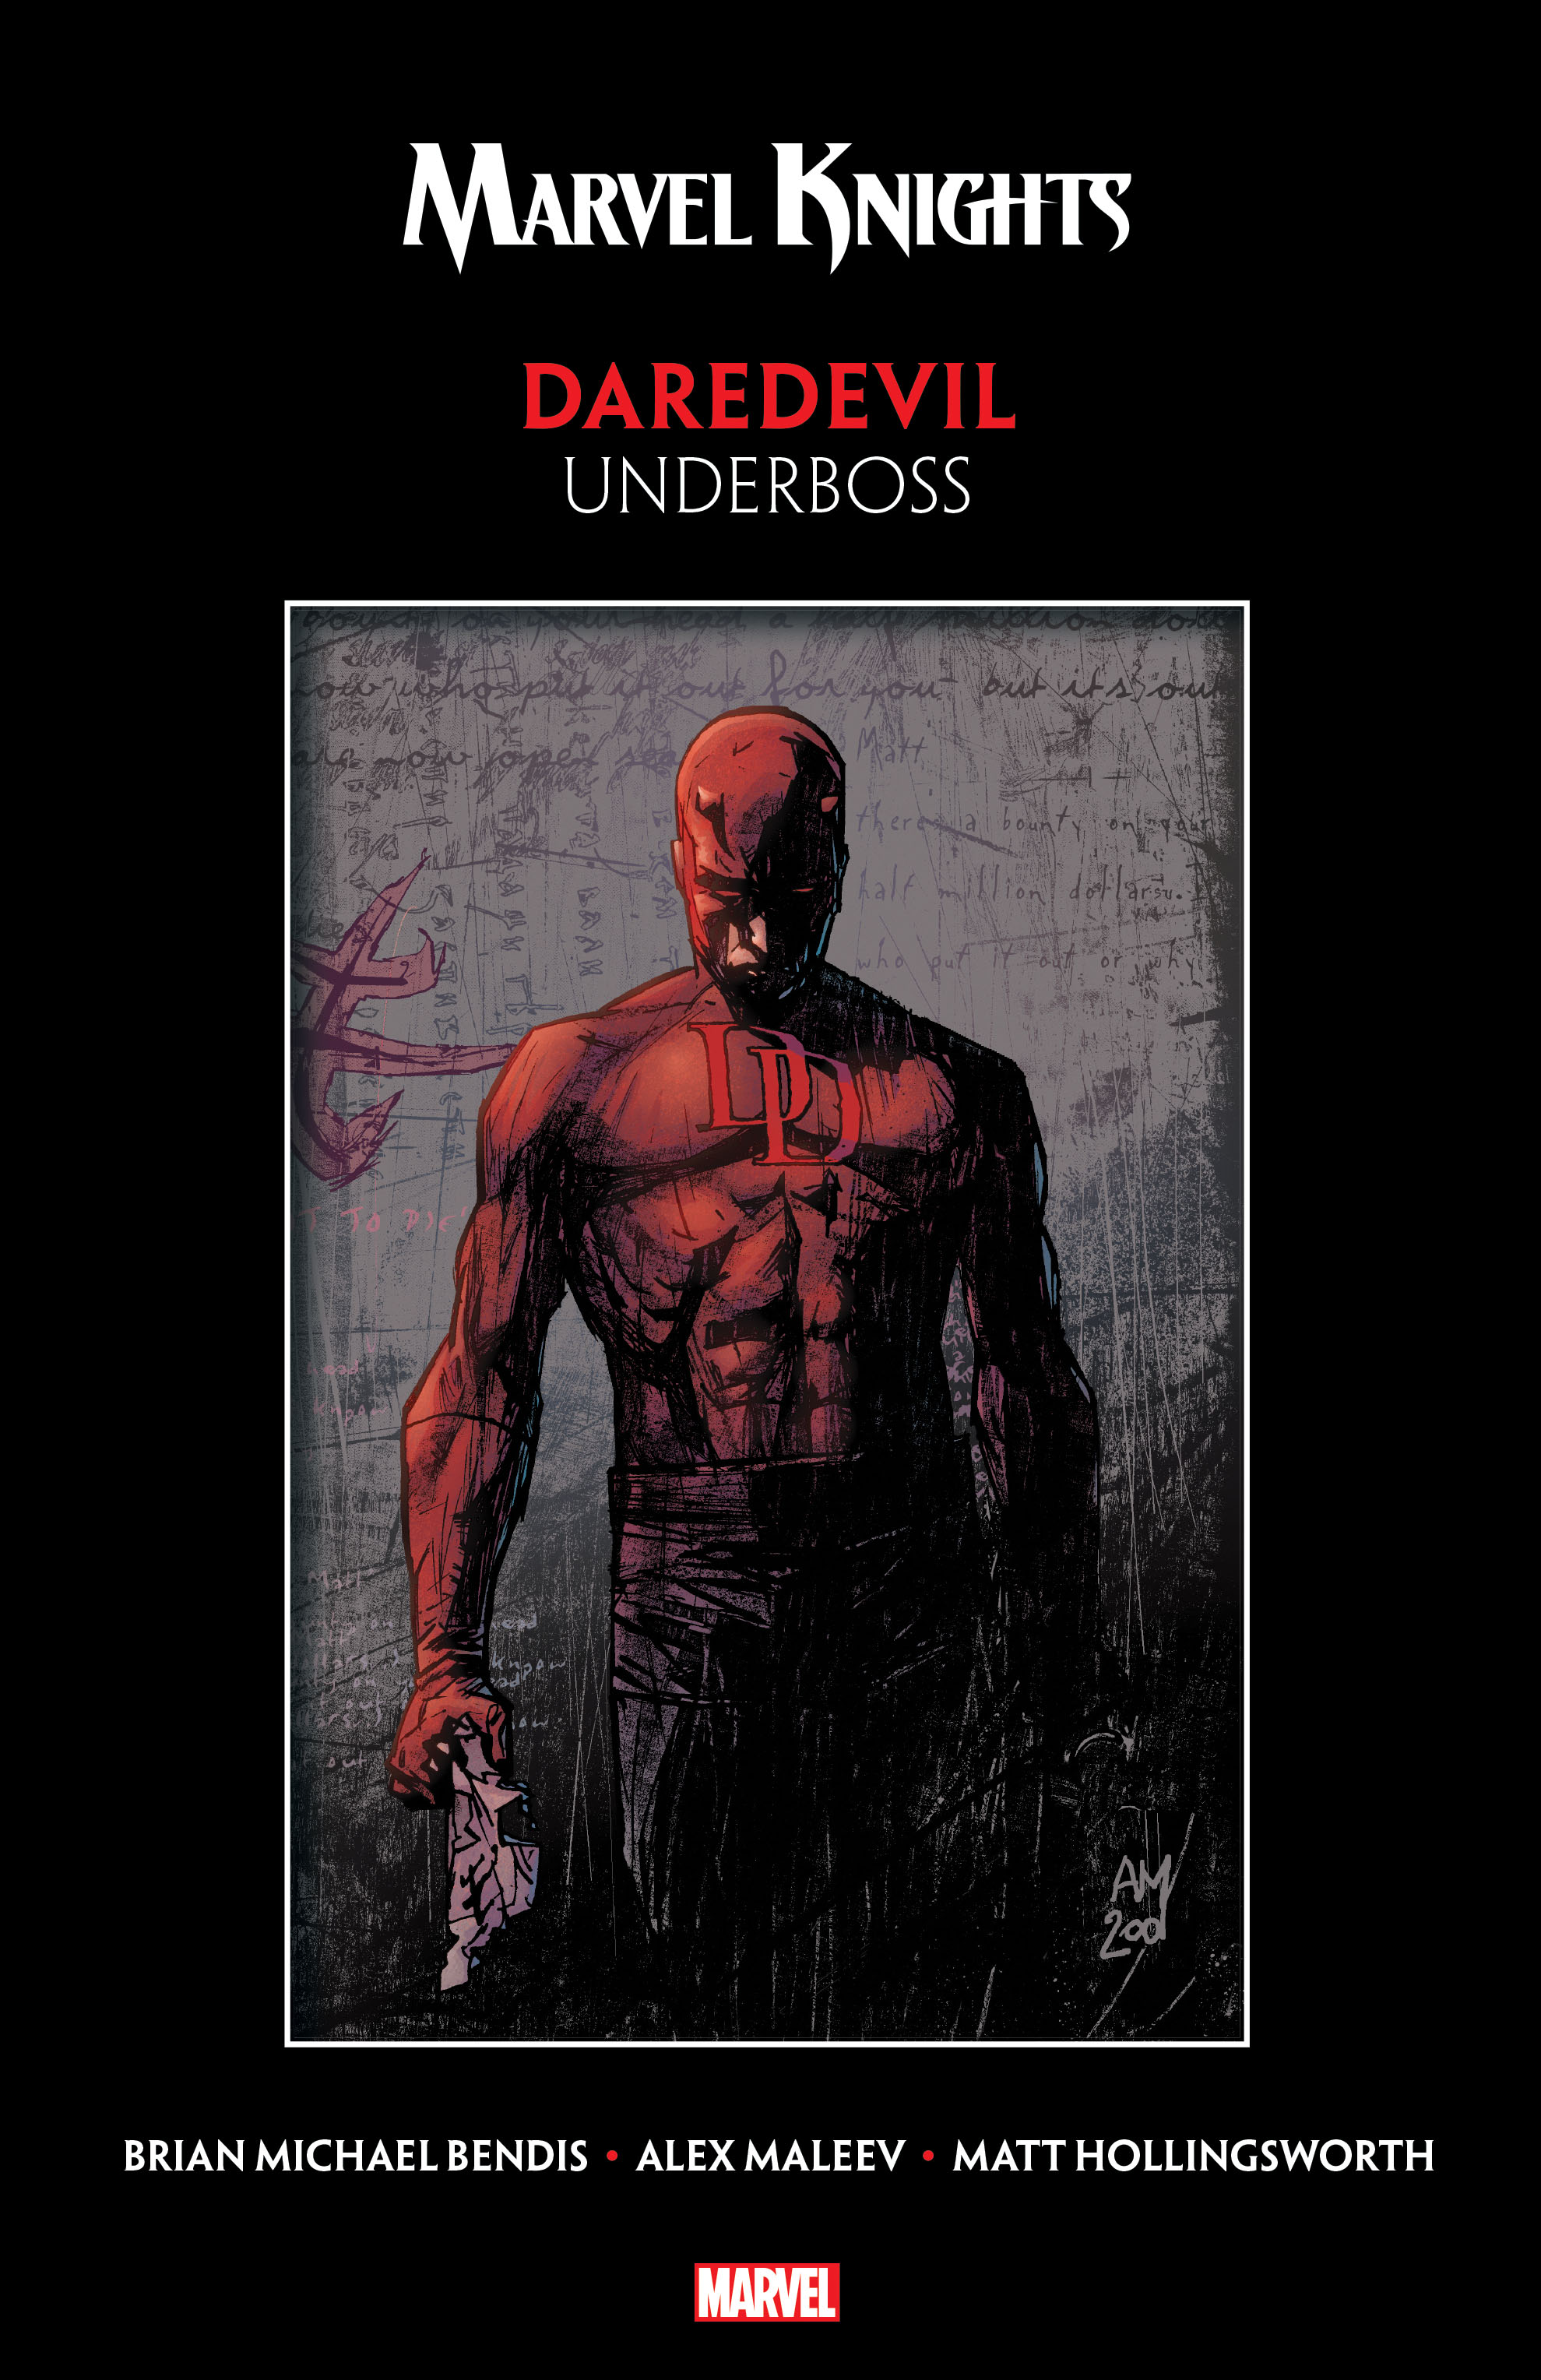 Marvel Knights Daredevil by Bendis & Maleev: Underboss (Trade Paperback)